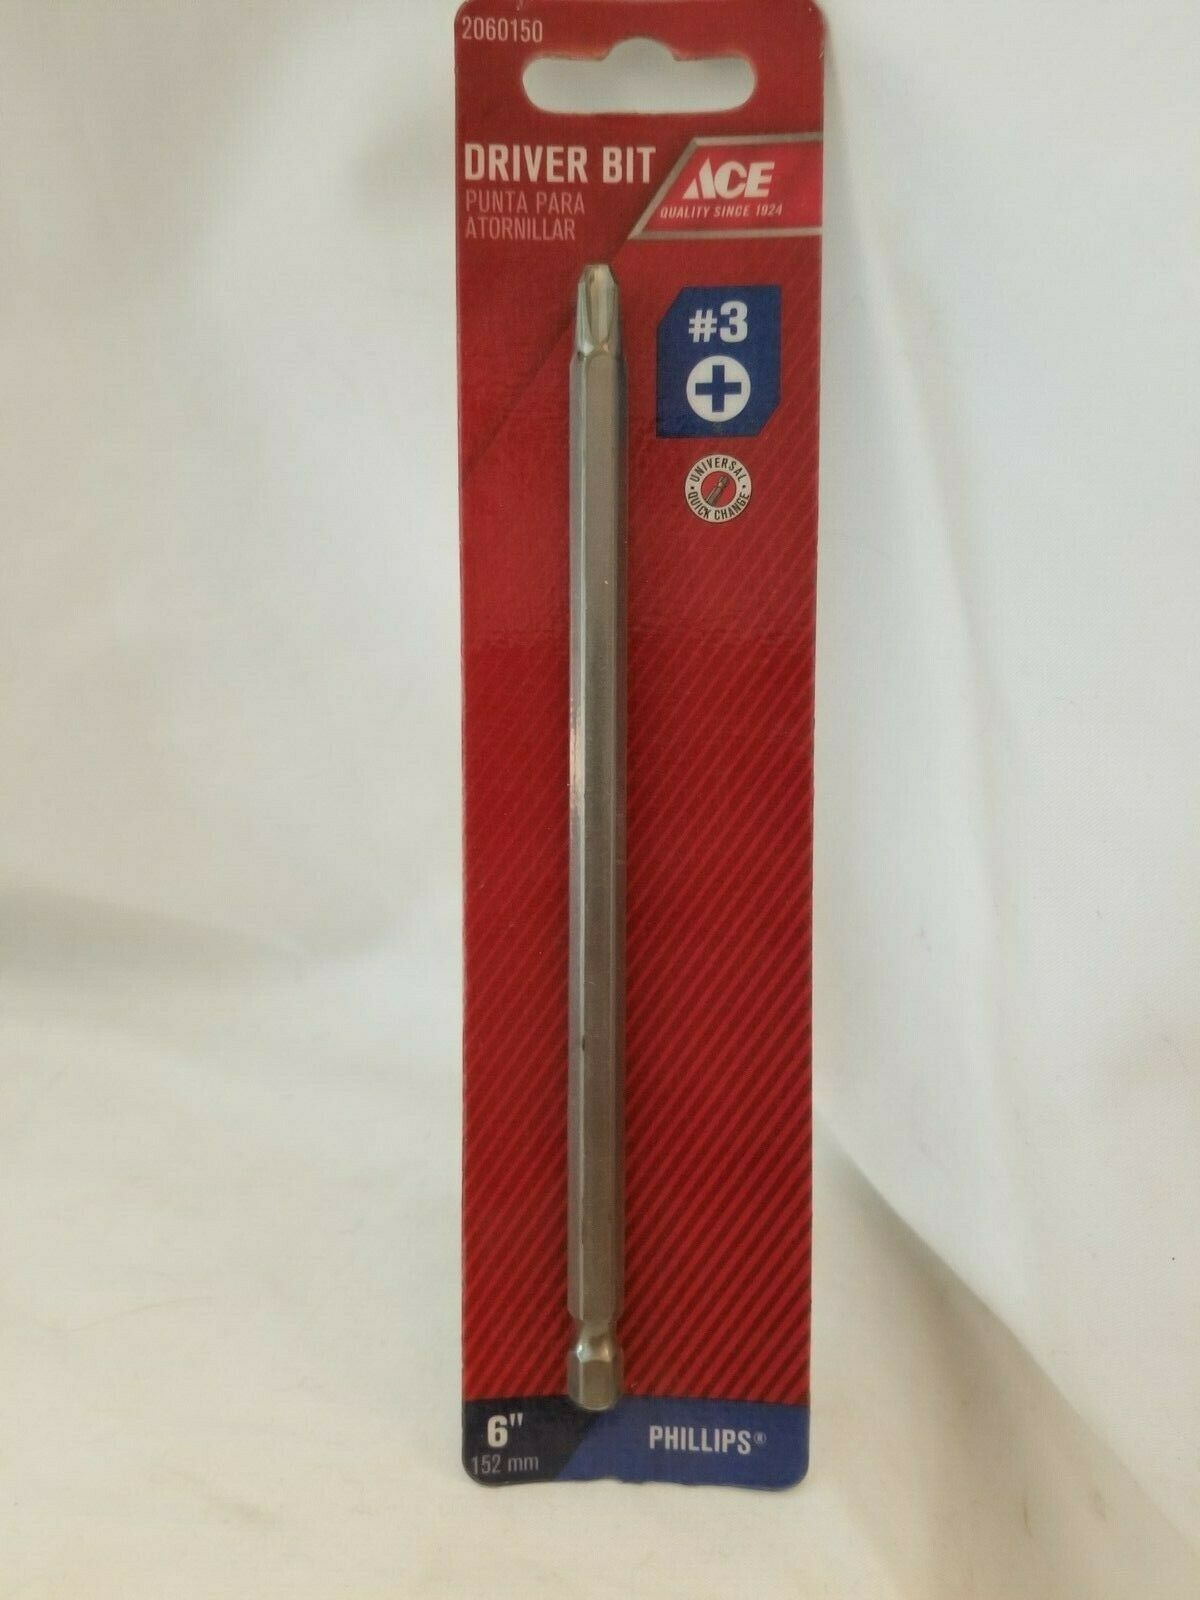 "Primary image for Ace Phillips 6"" Screwdriver Bit 2060150 #3 Tool Steel"